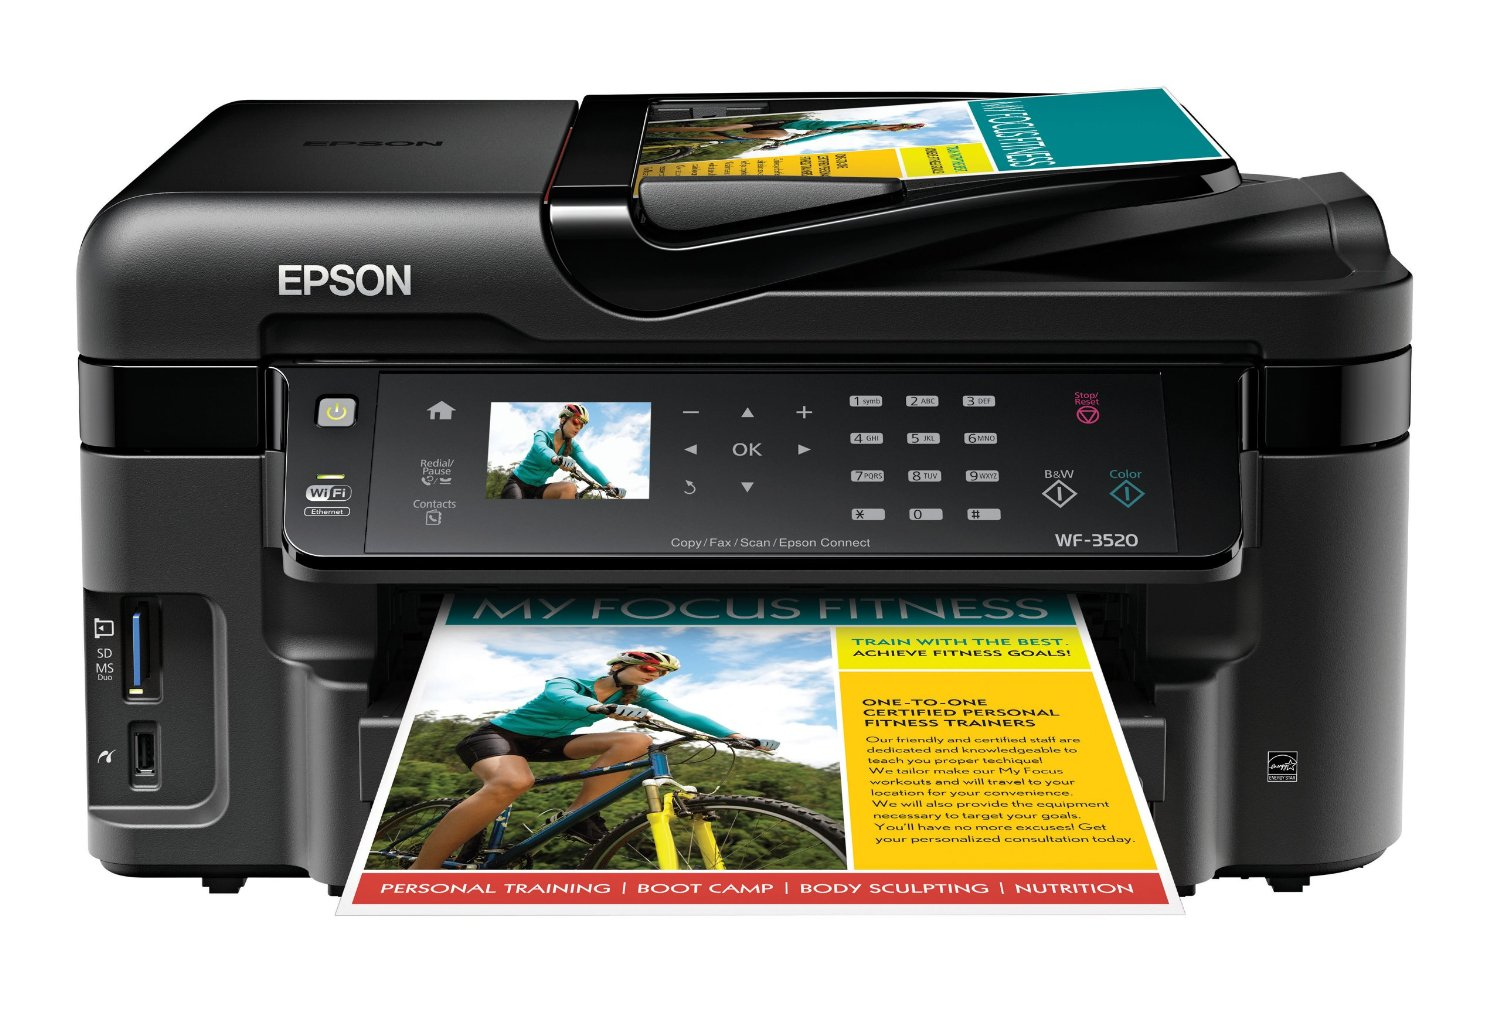 Six Reasons Why We Still Need Printers